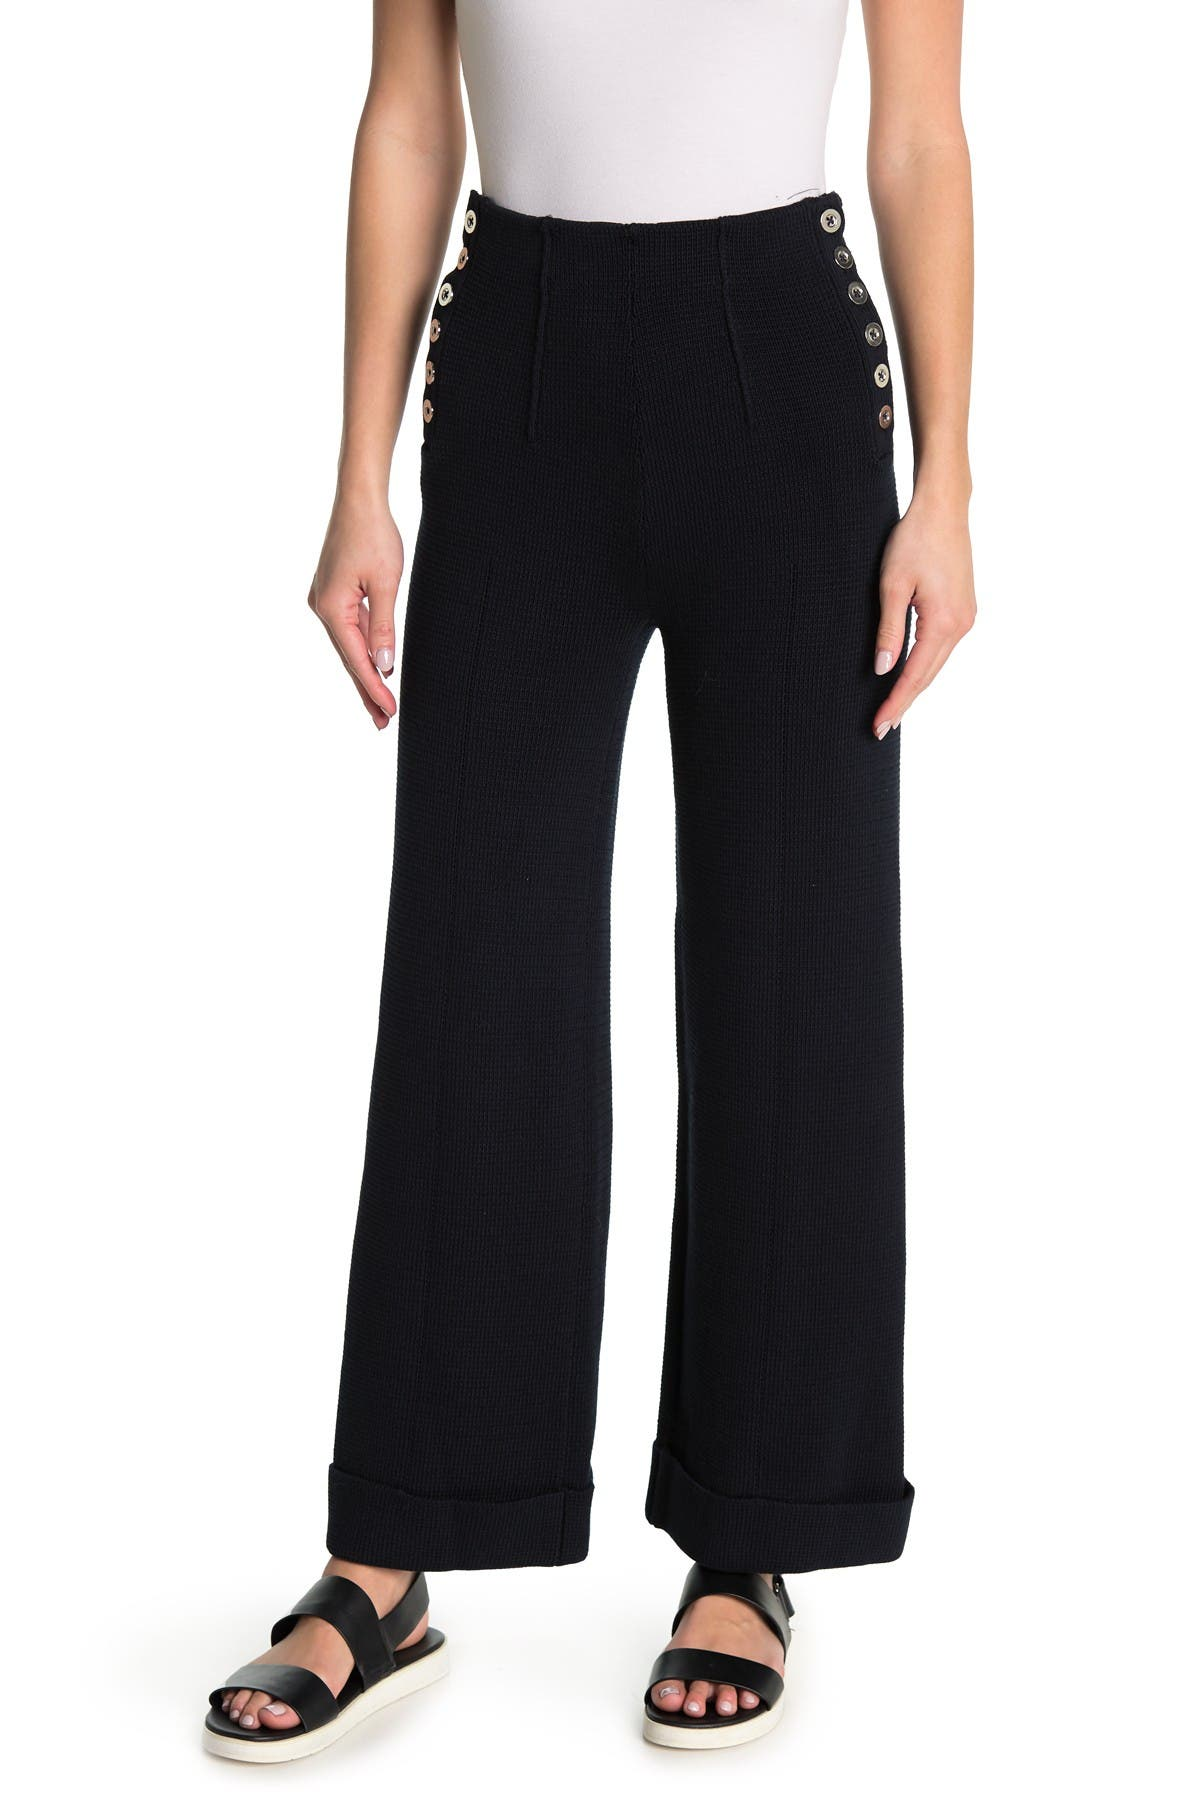 Image of 3.1 PHILLIP LIM Knit Sailor Pants